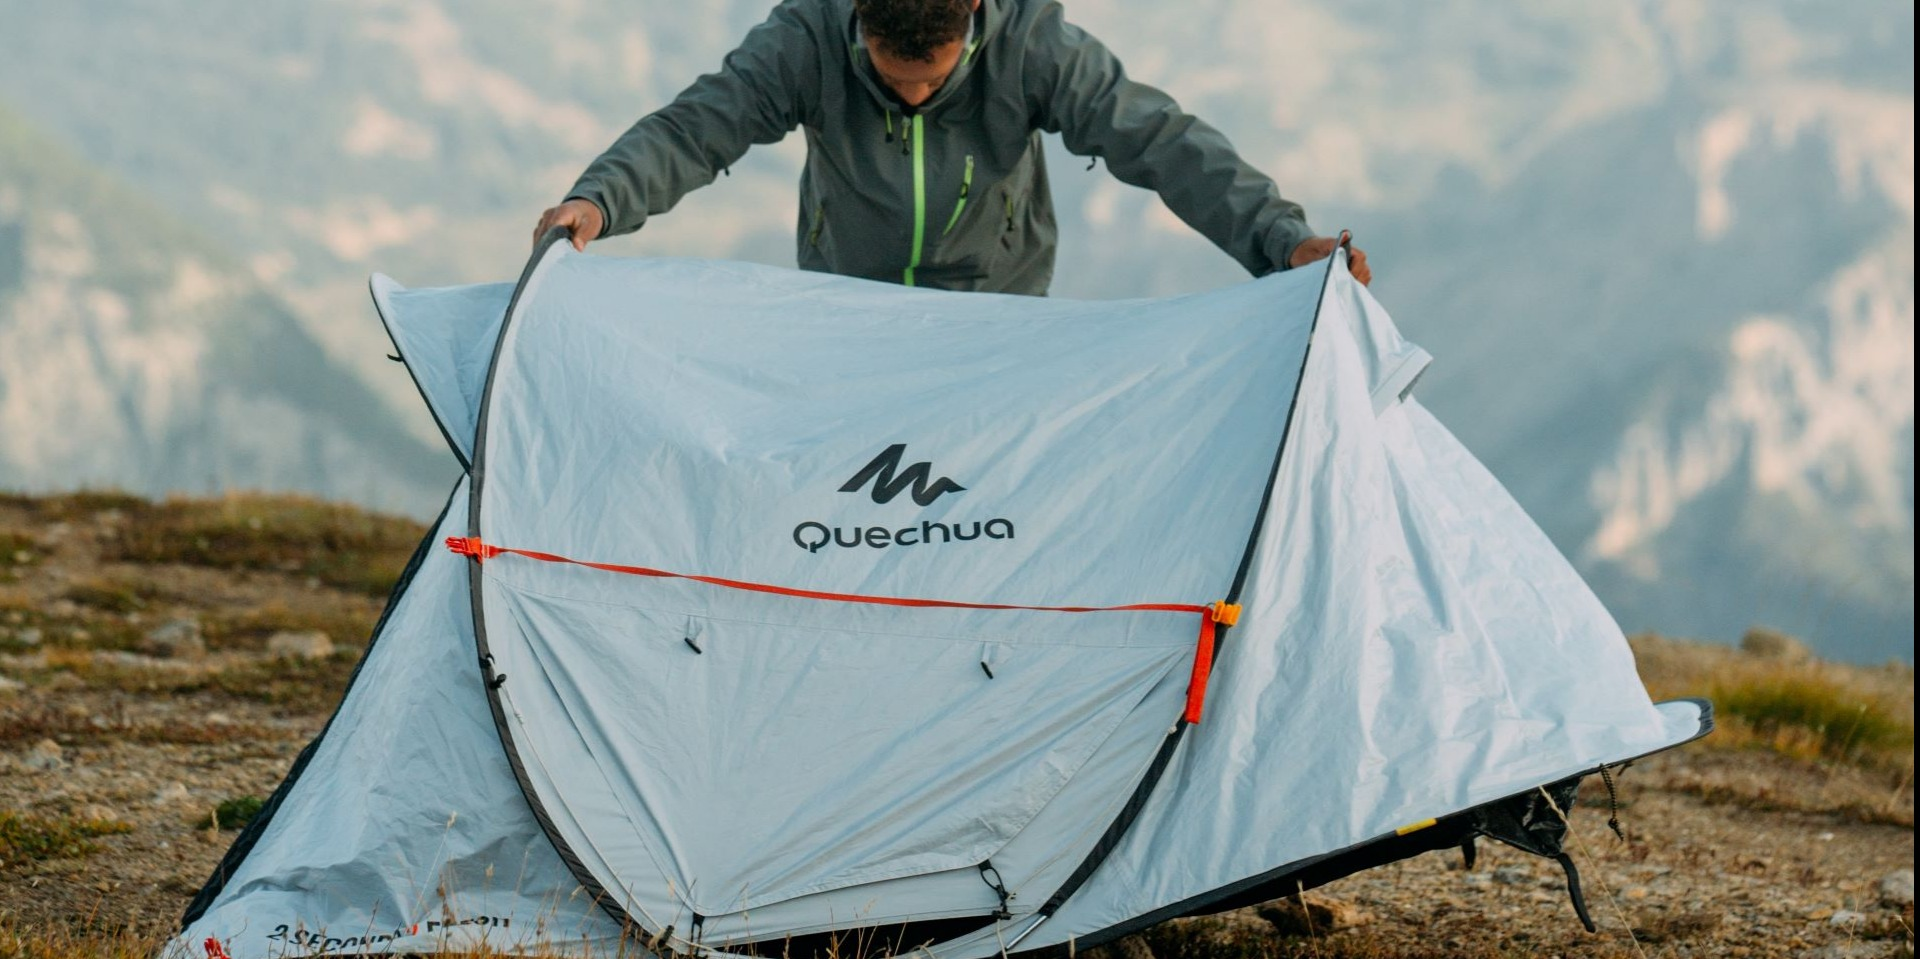 How To Put Away A Pop-up Tent?